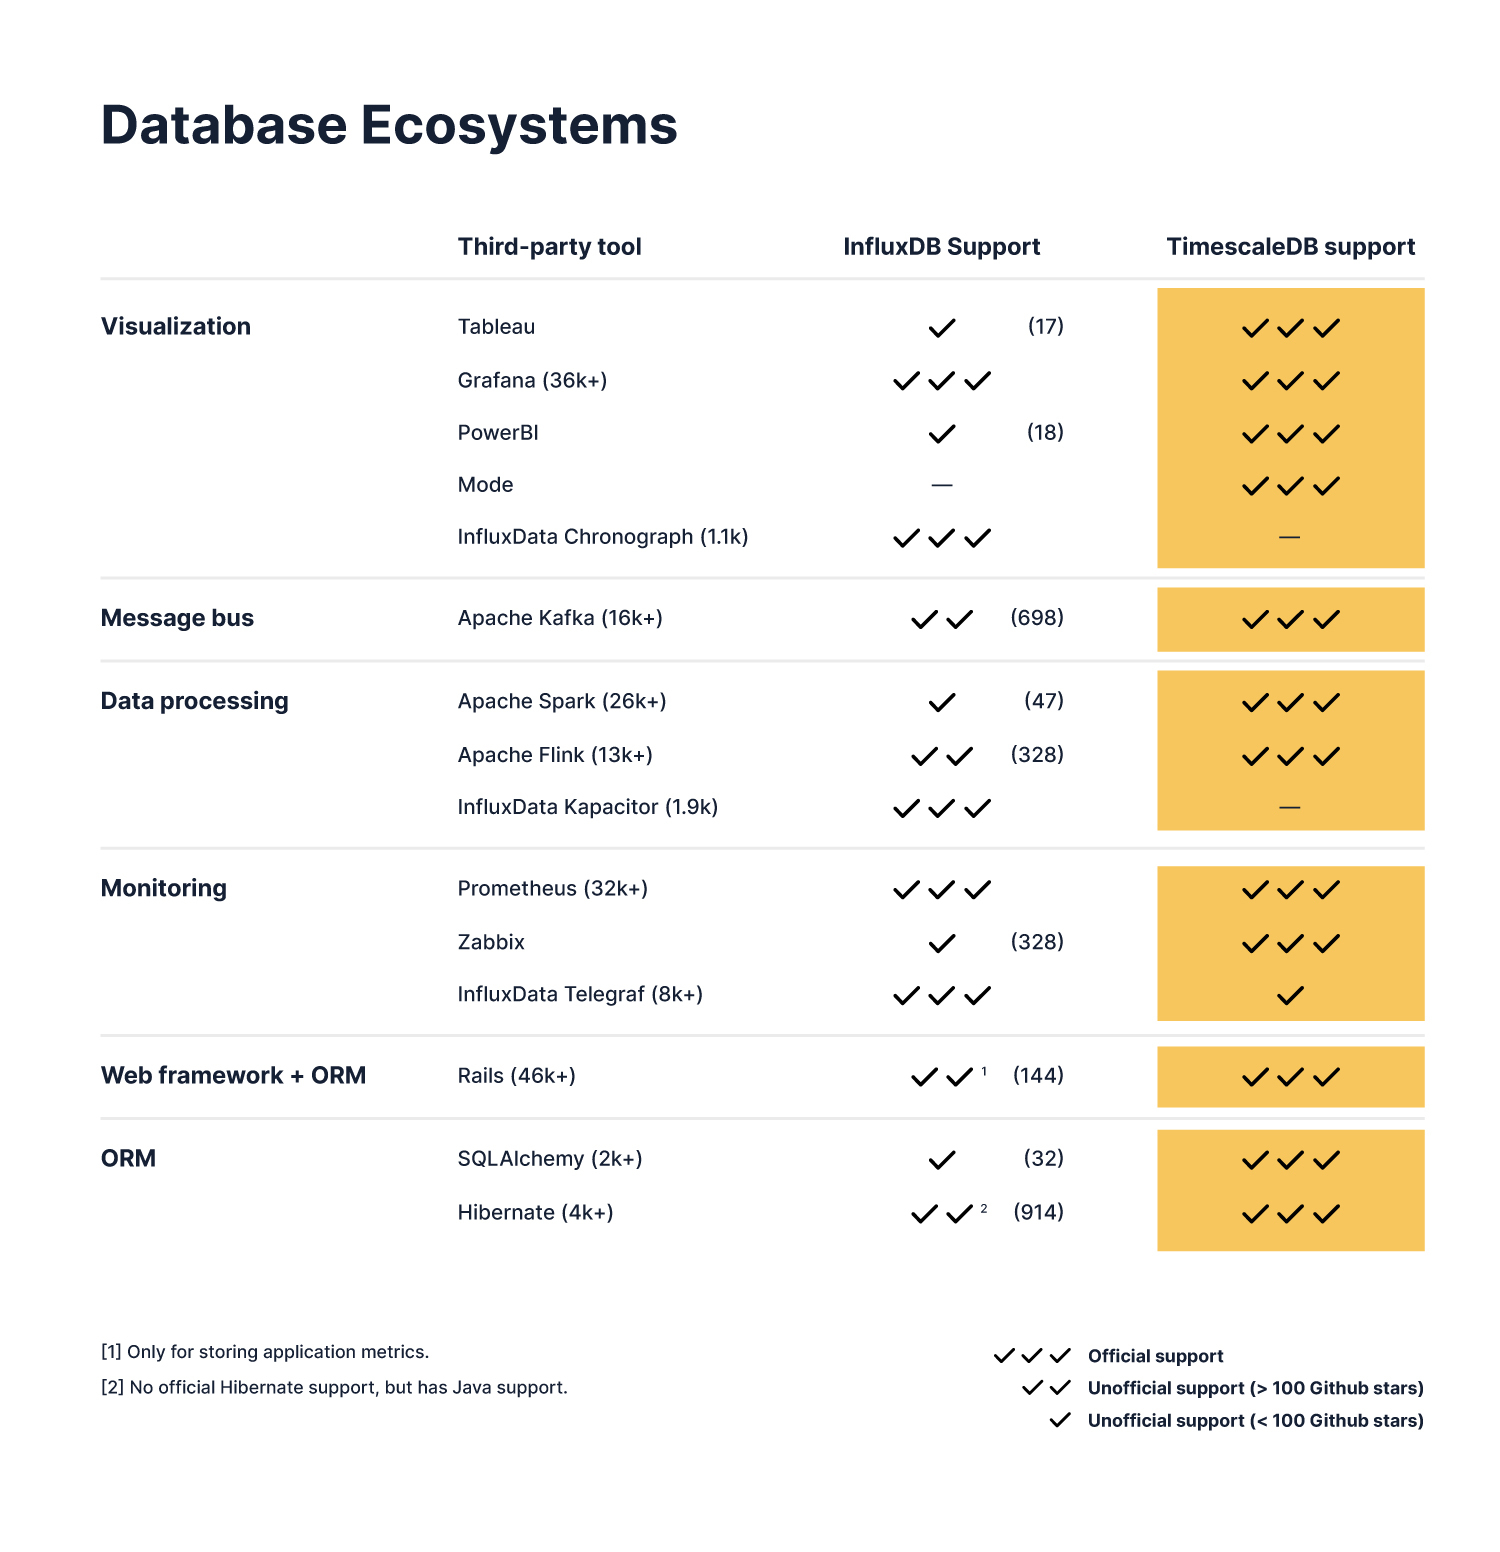 Chart comparing ecosystem differences between TimescaleDB and InfluxDB